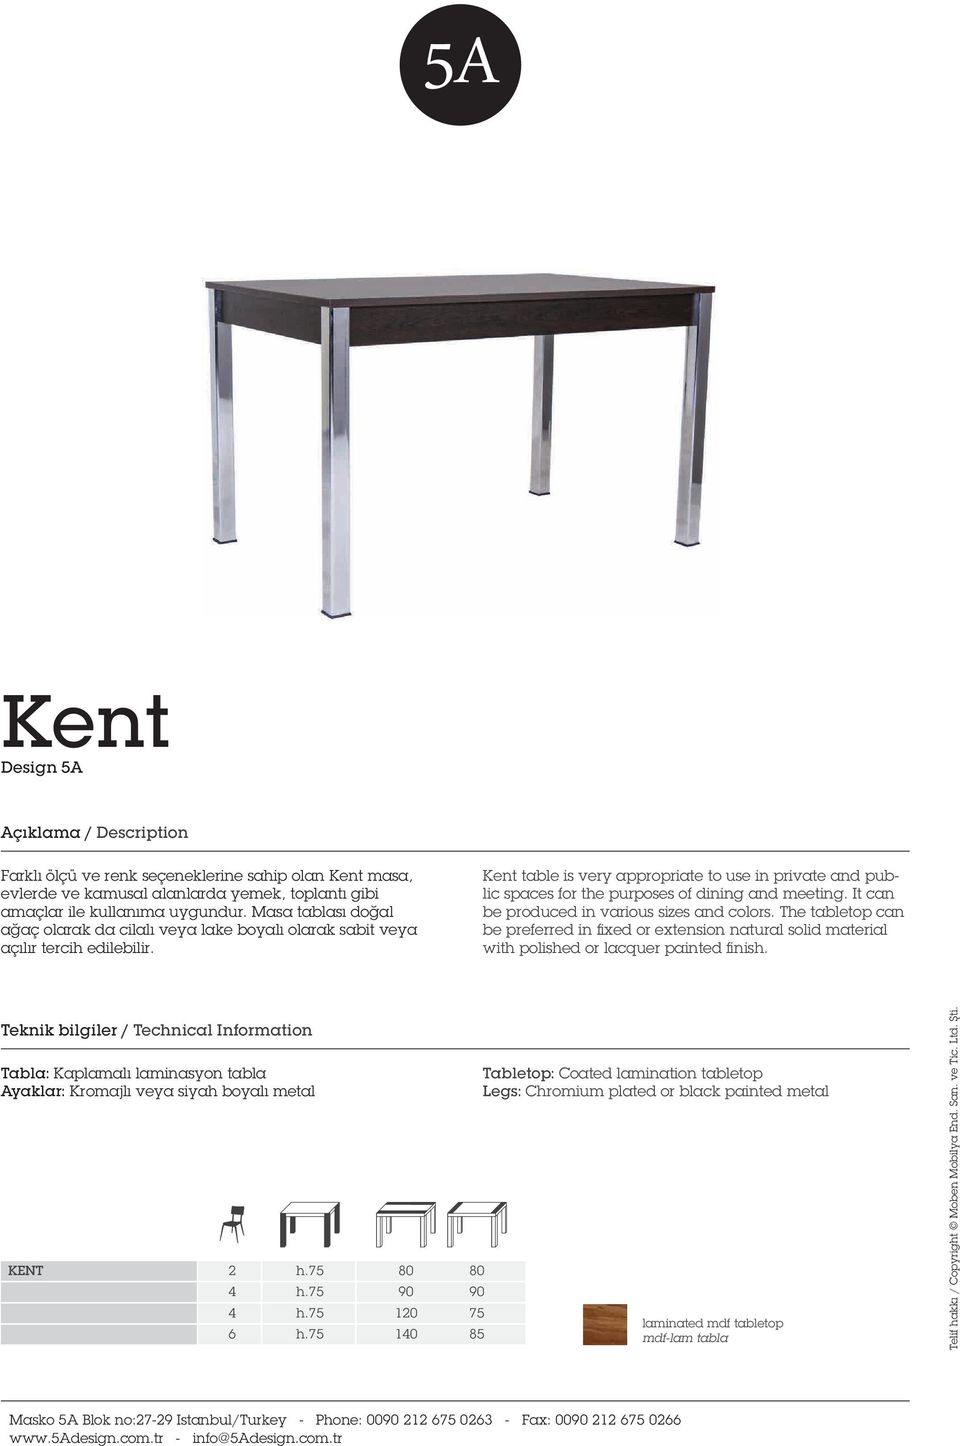 Kent table is very appropriate to use in private and public spaces for the purposes of dining and meeting. It can be produced in various sizes and colors.